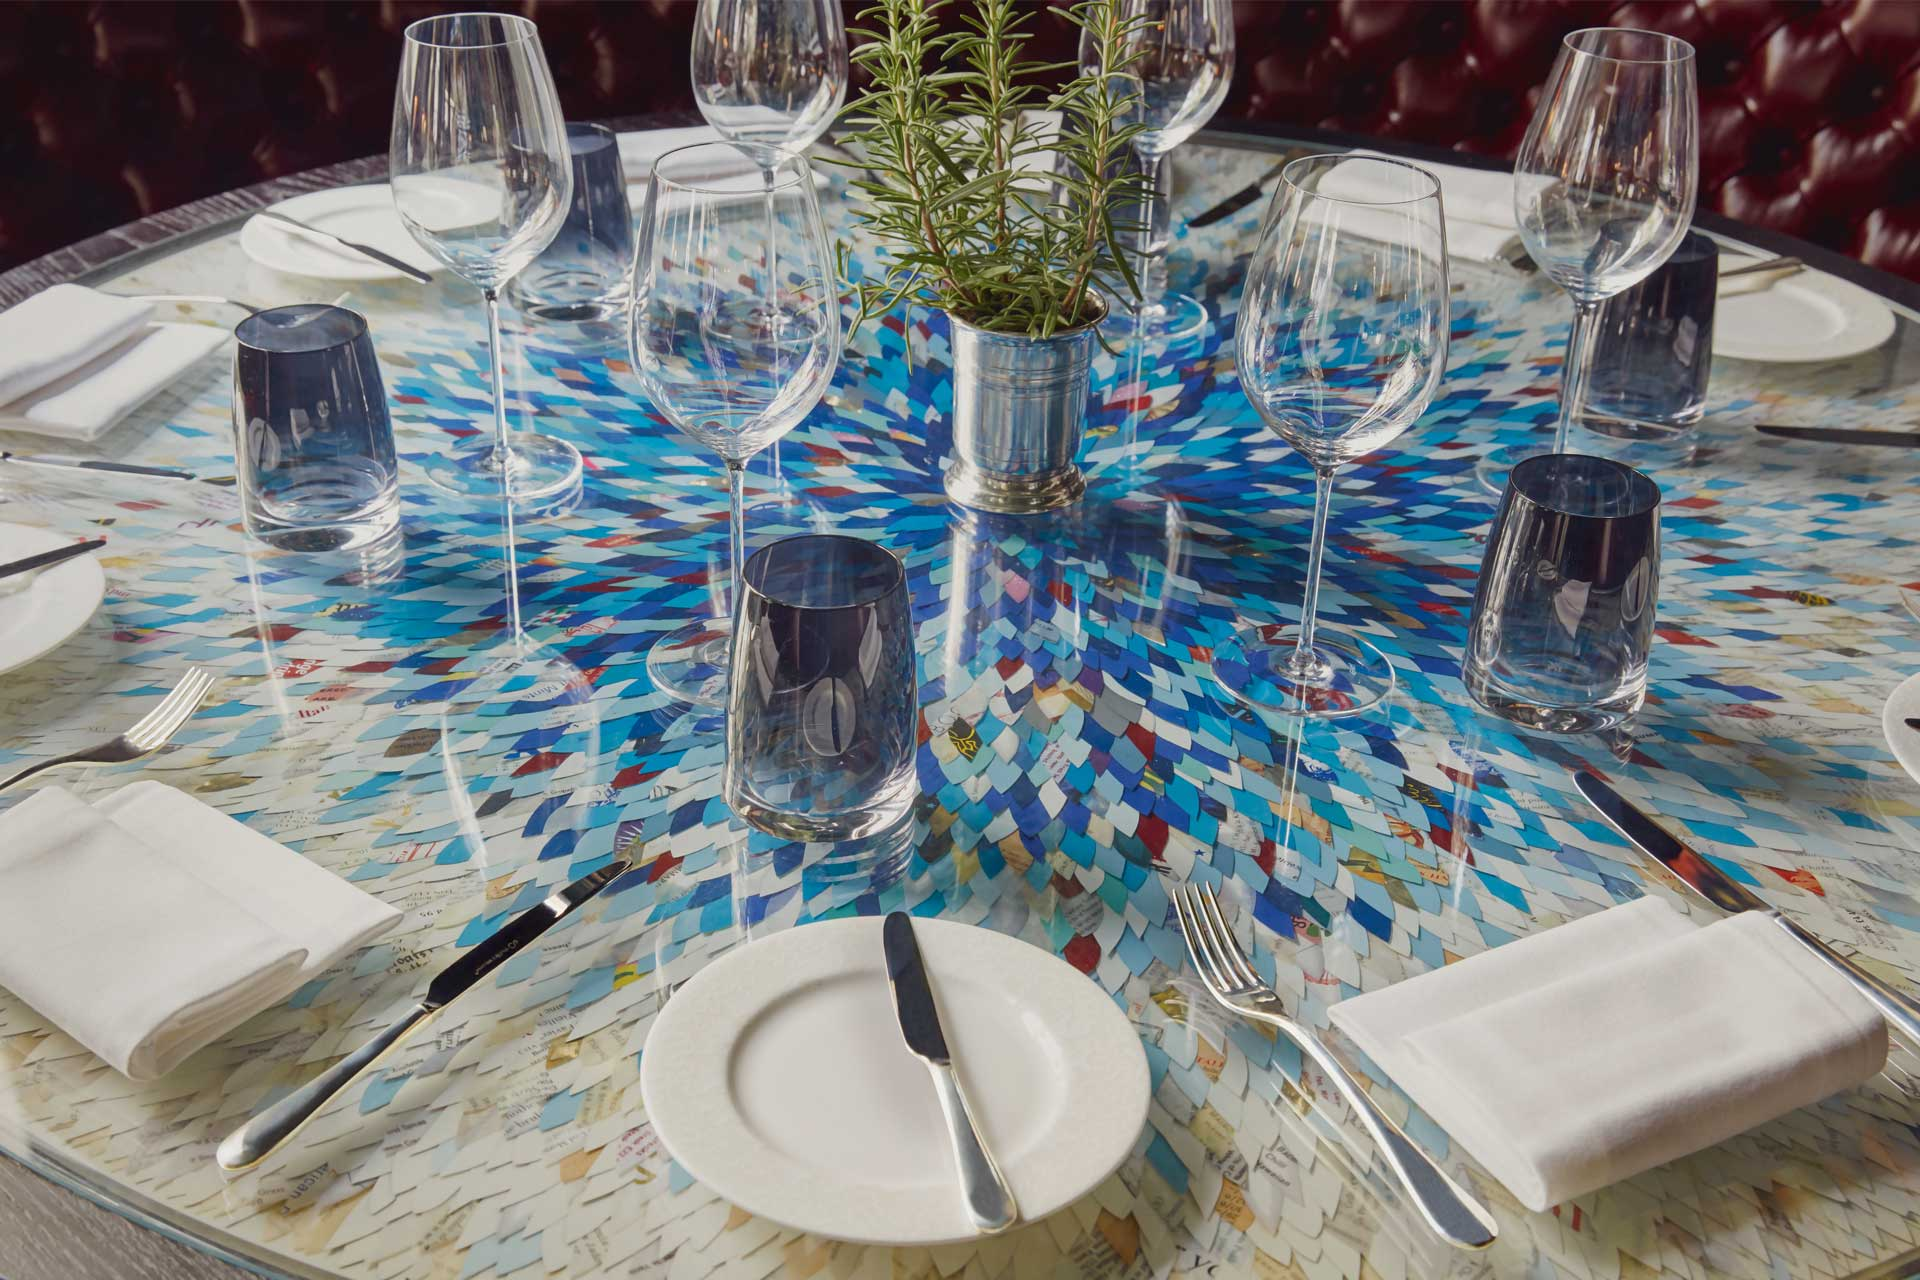 Bespoke tabletop by Robi Walters featuring menus cut into petal shapes